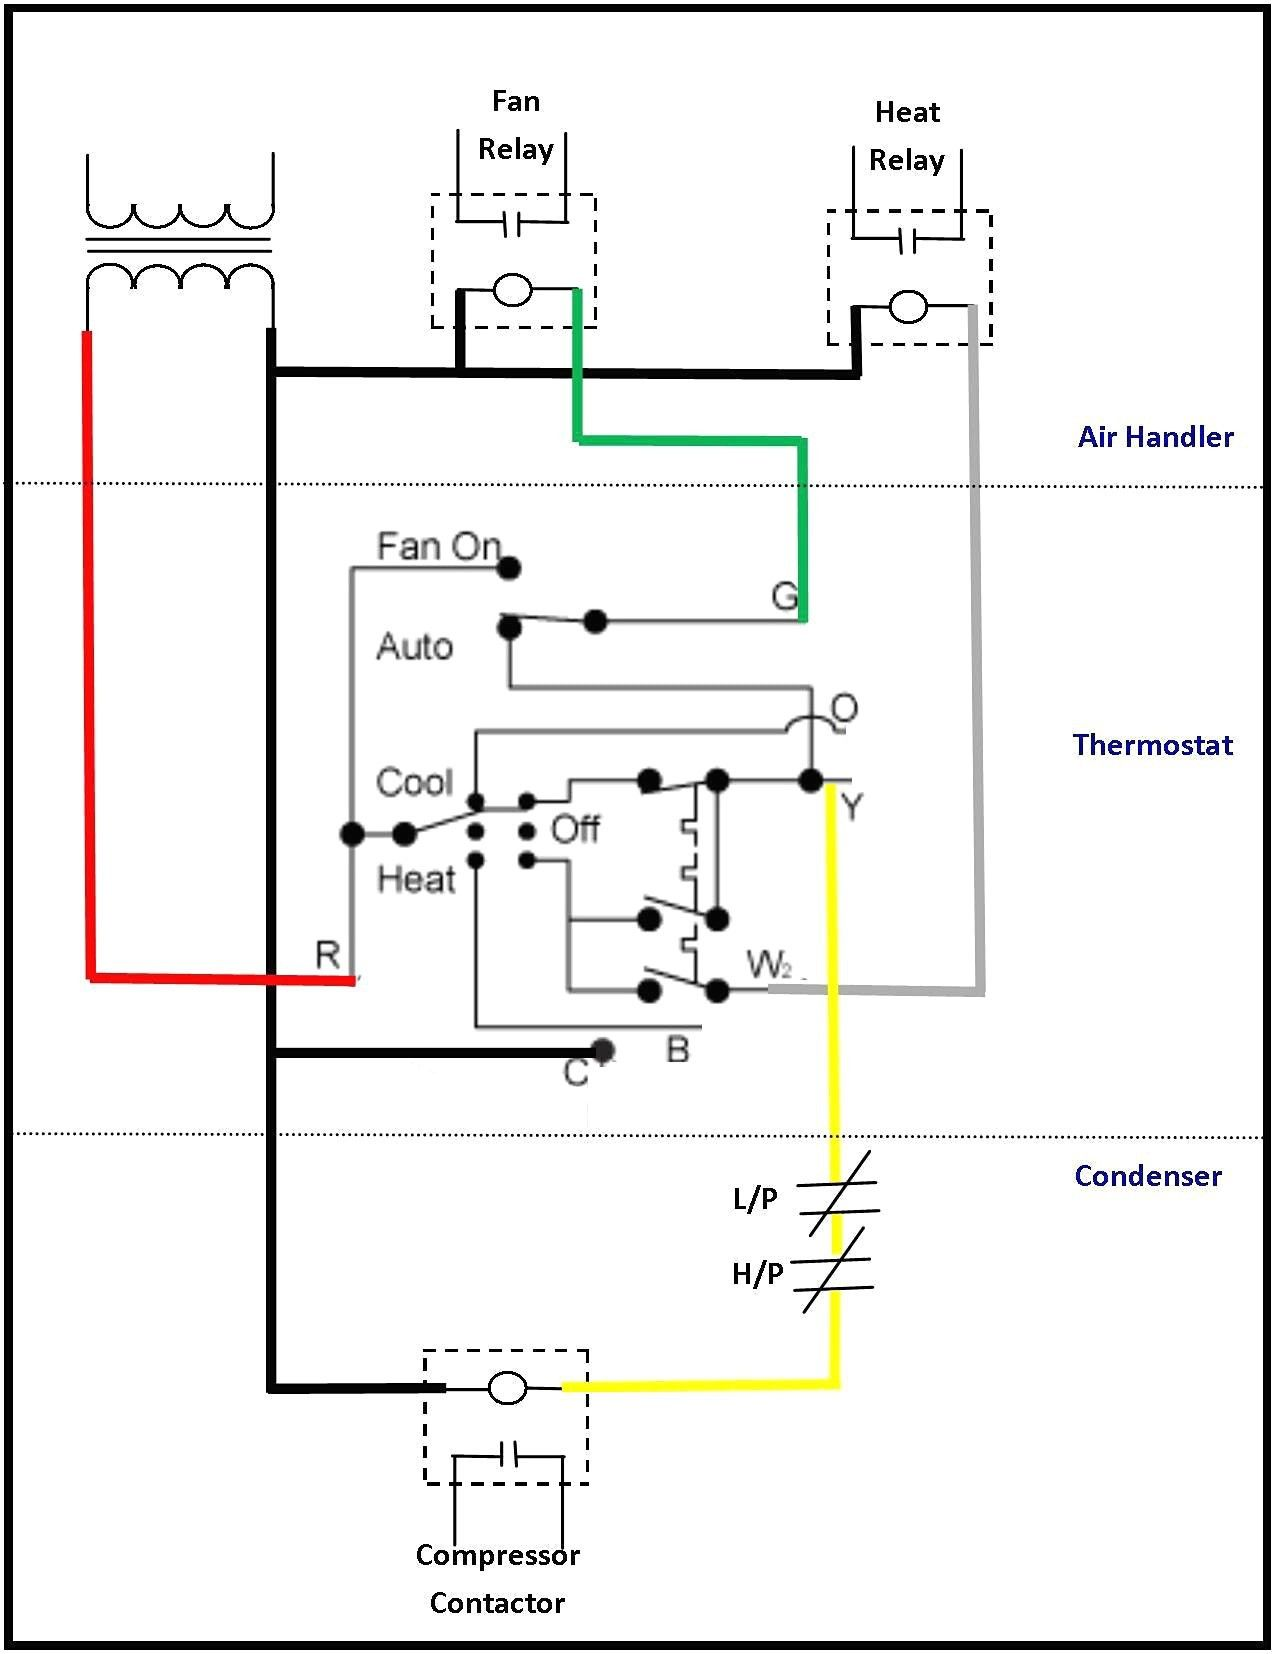 Best Of Low Voltage Transformer Wiring Diagram In 2020 Electrical Circuit Diagram Thermostat Wiring Electrical Wiring Diagram